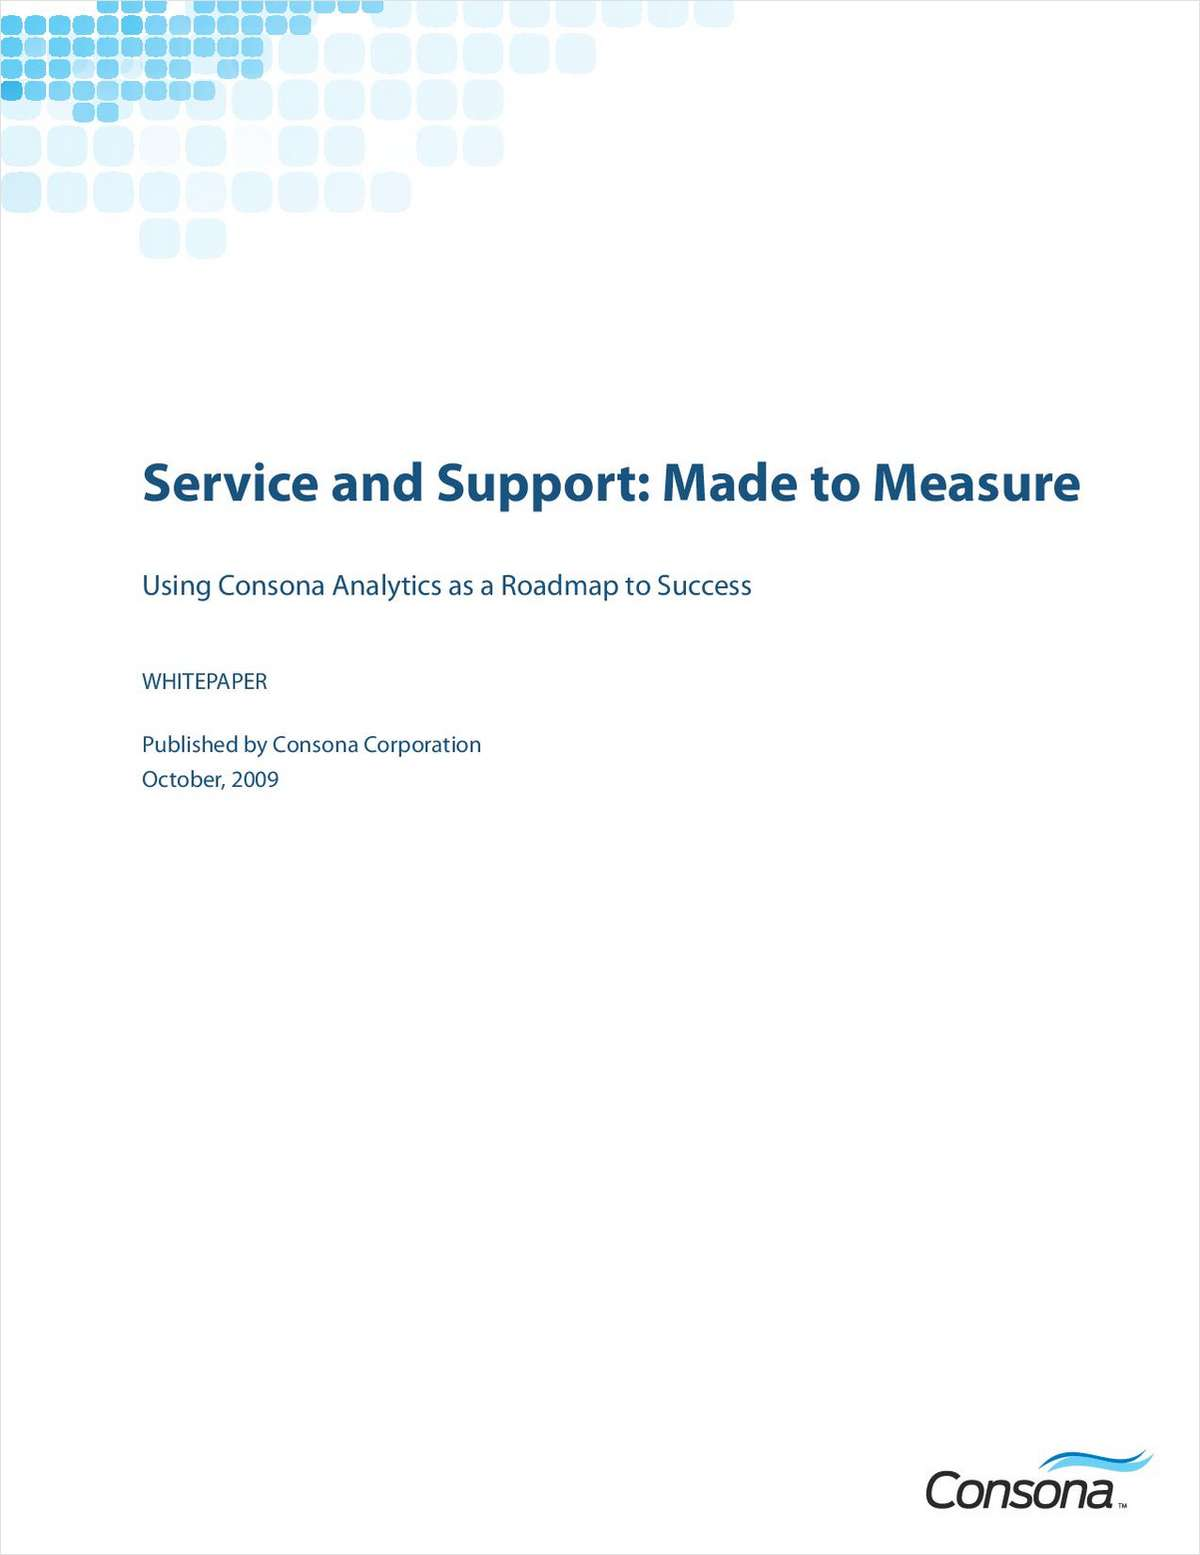 High Tech Customer Service and Support: Using Analytics to Build a Roadmap to Success